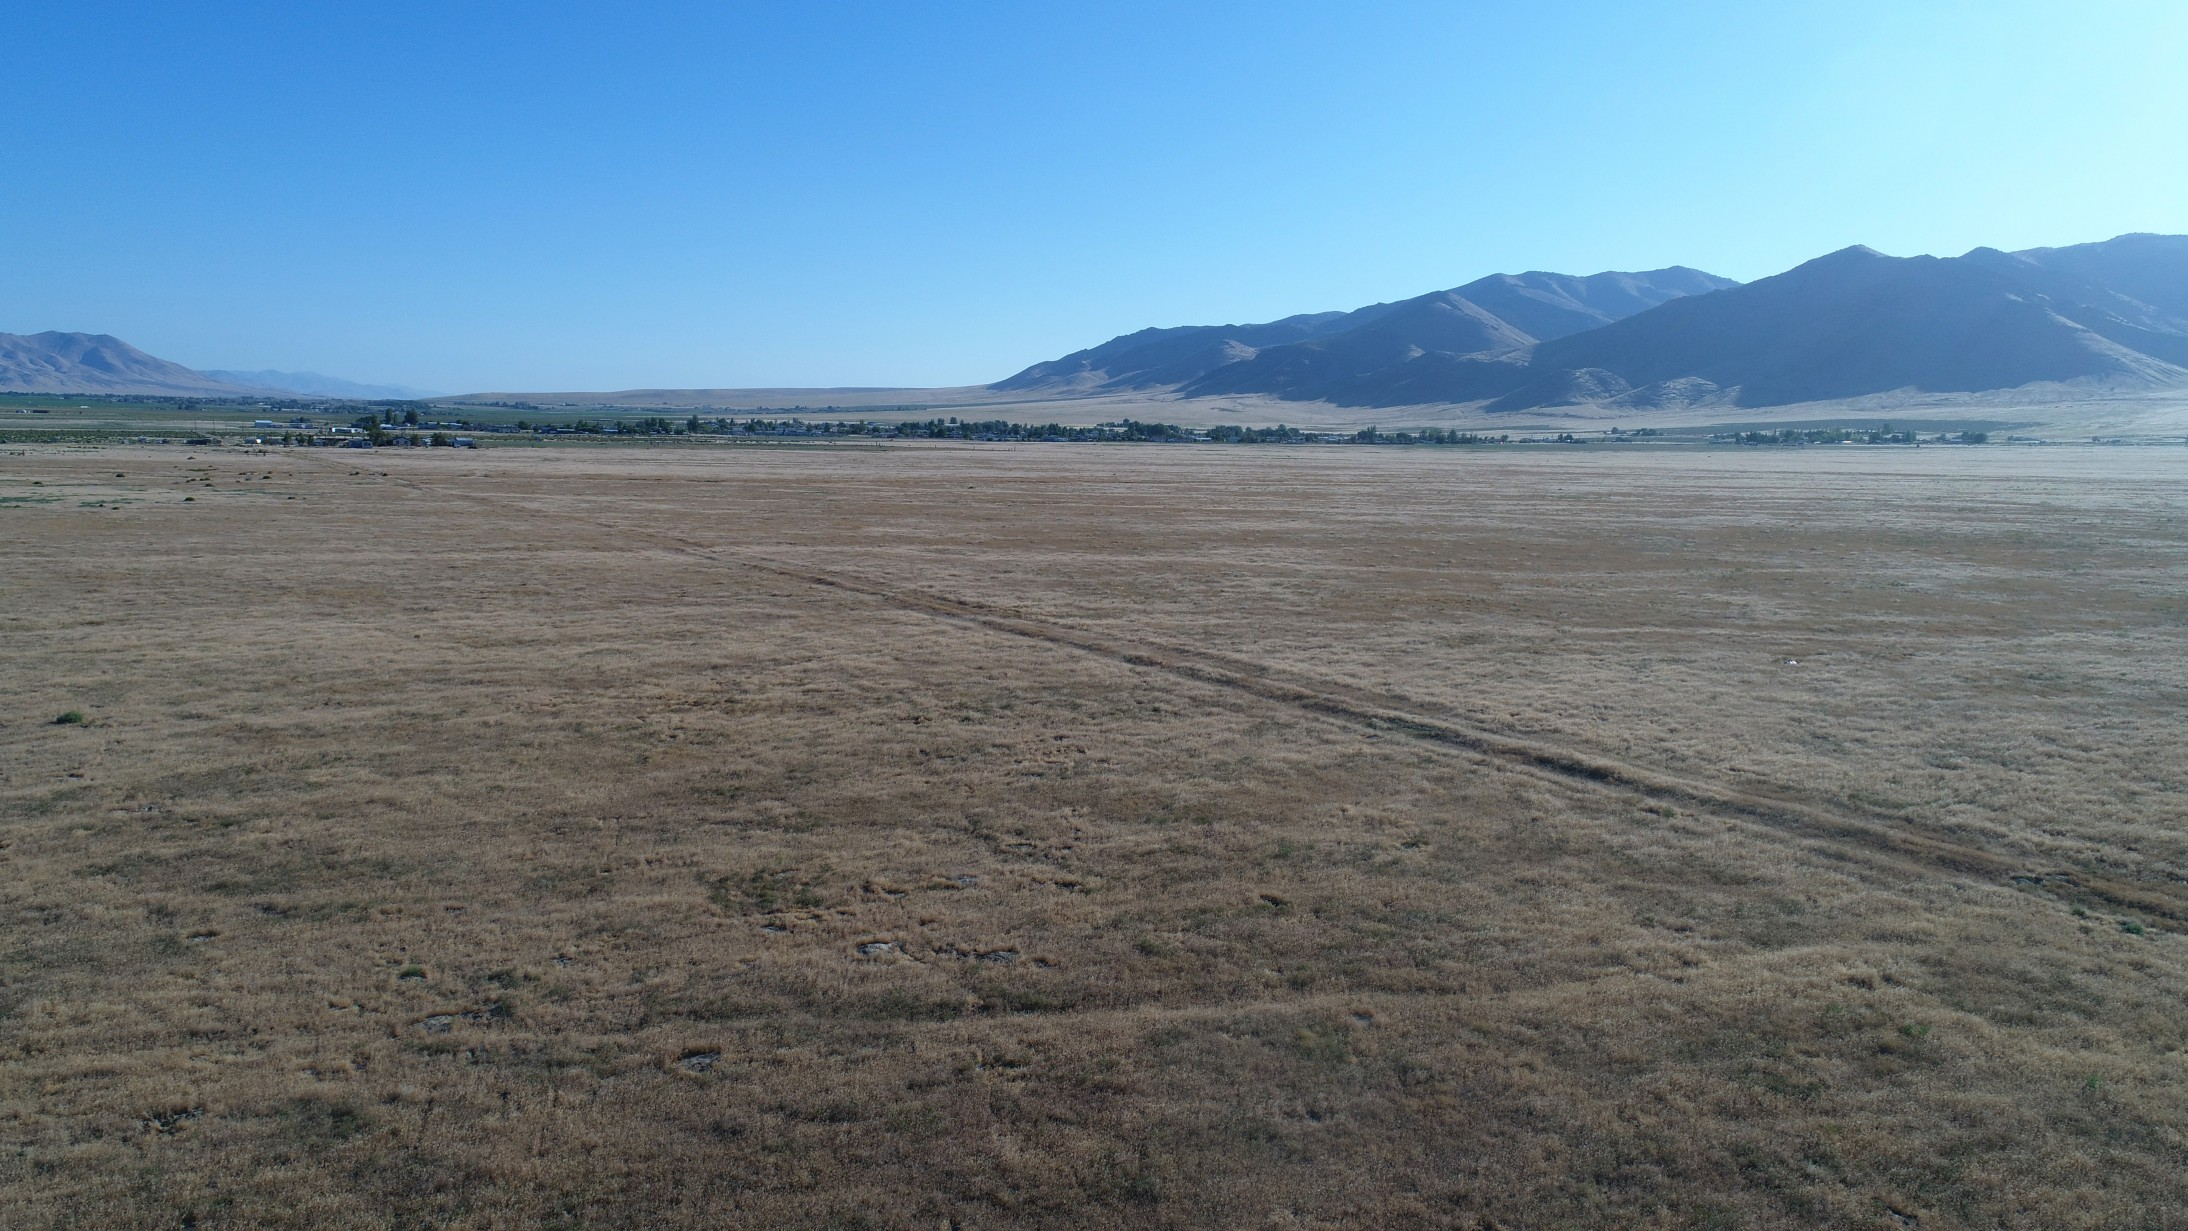 Nevada, Pershing County10 Acres in Northern NV - Amazing Value - 10 AcresCash Price: $10,000Financing: $195.83